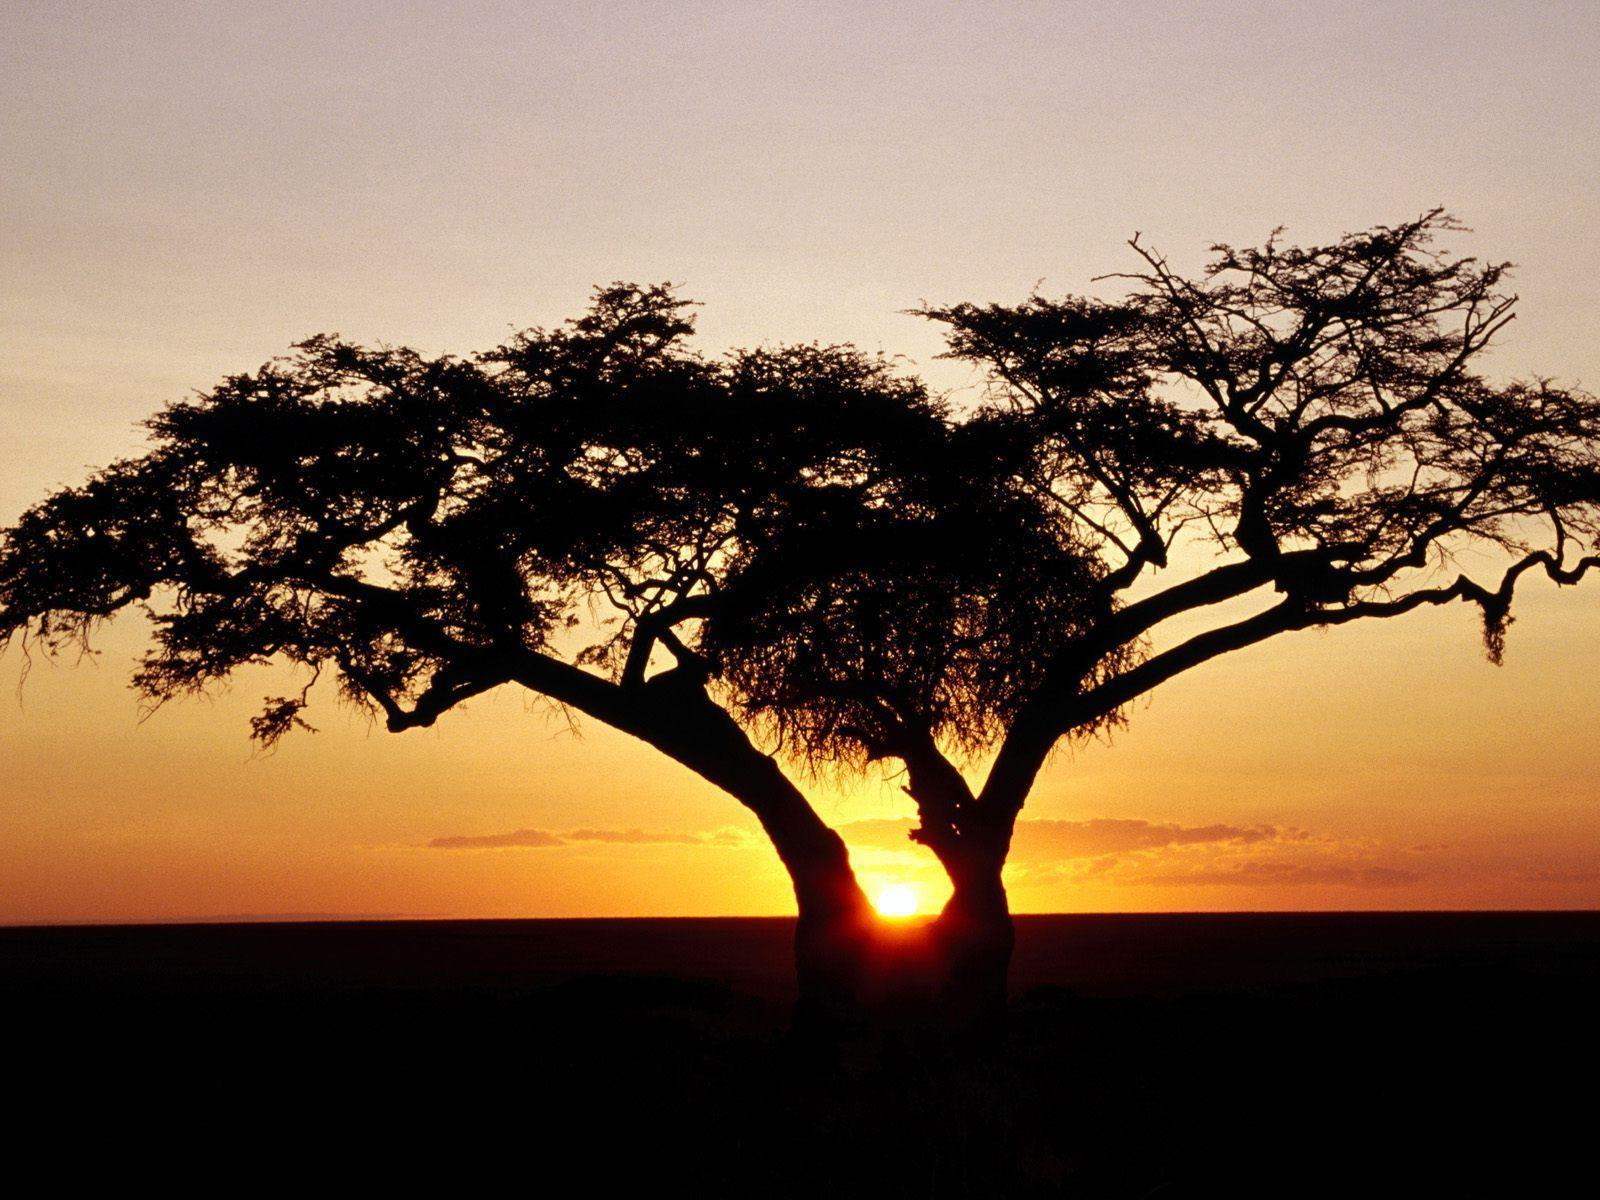 HD Wallpapers: 1600x1200 » Nature » Safari Sunrise, Africa Free ...